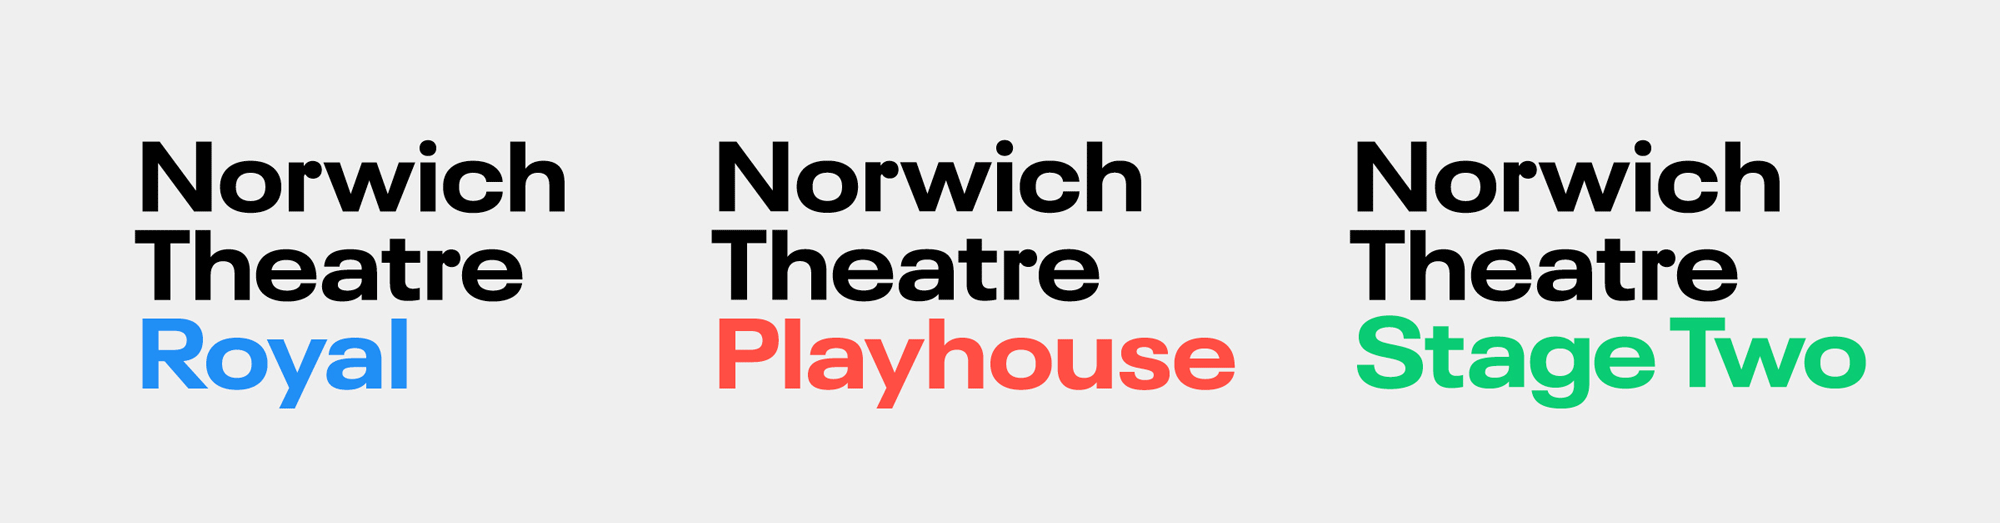 New Logo and Identity for Norwich Theatre by Rose